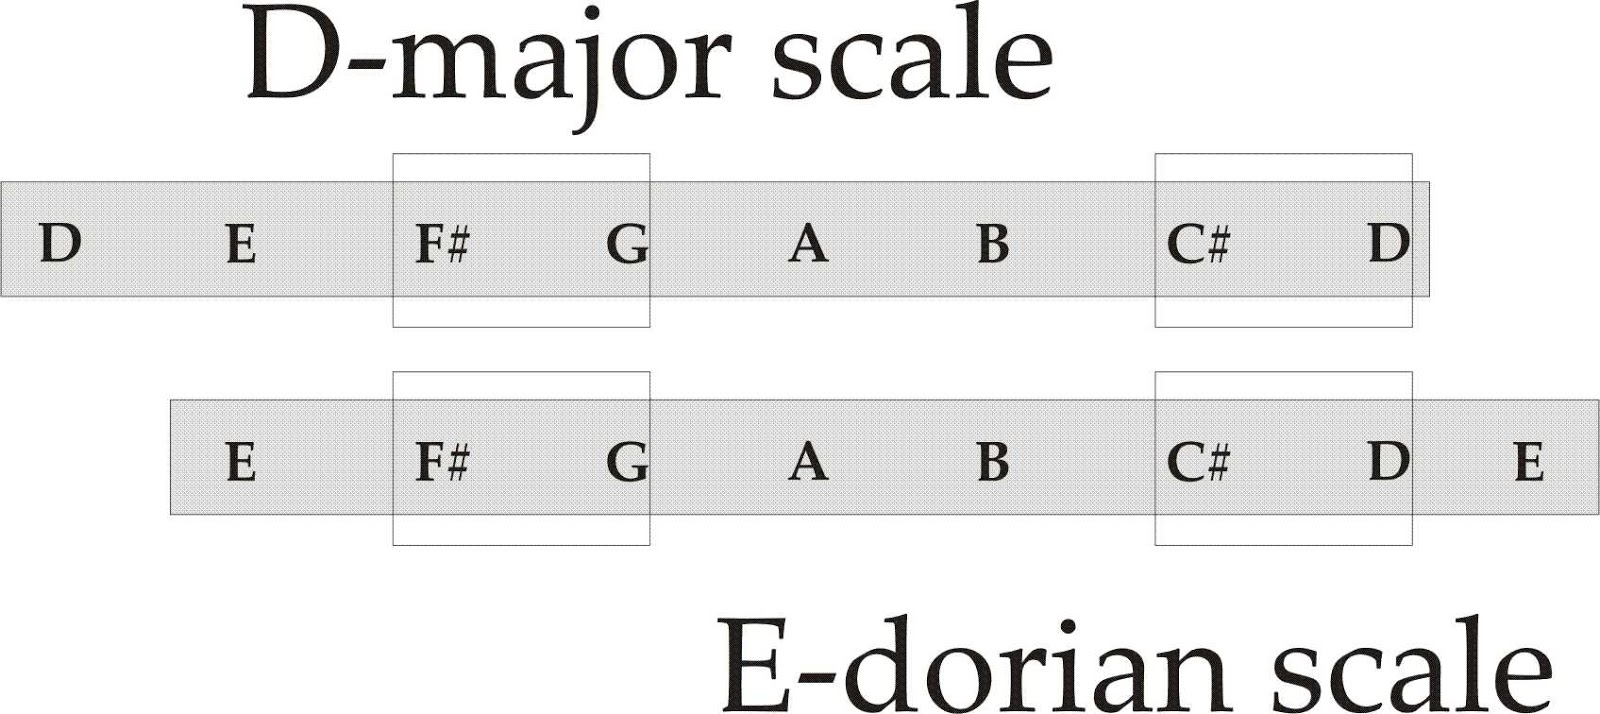 Dont Fall For This E Dorian Chords Scam Komseq Jguitar Will Draw Chord Diagrams Each Of The Symbols Entered Here Are Diatonic Scale